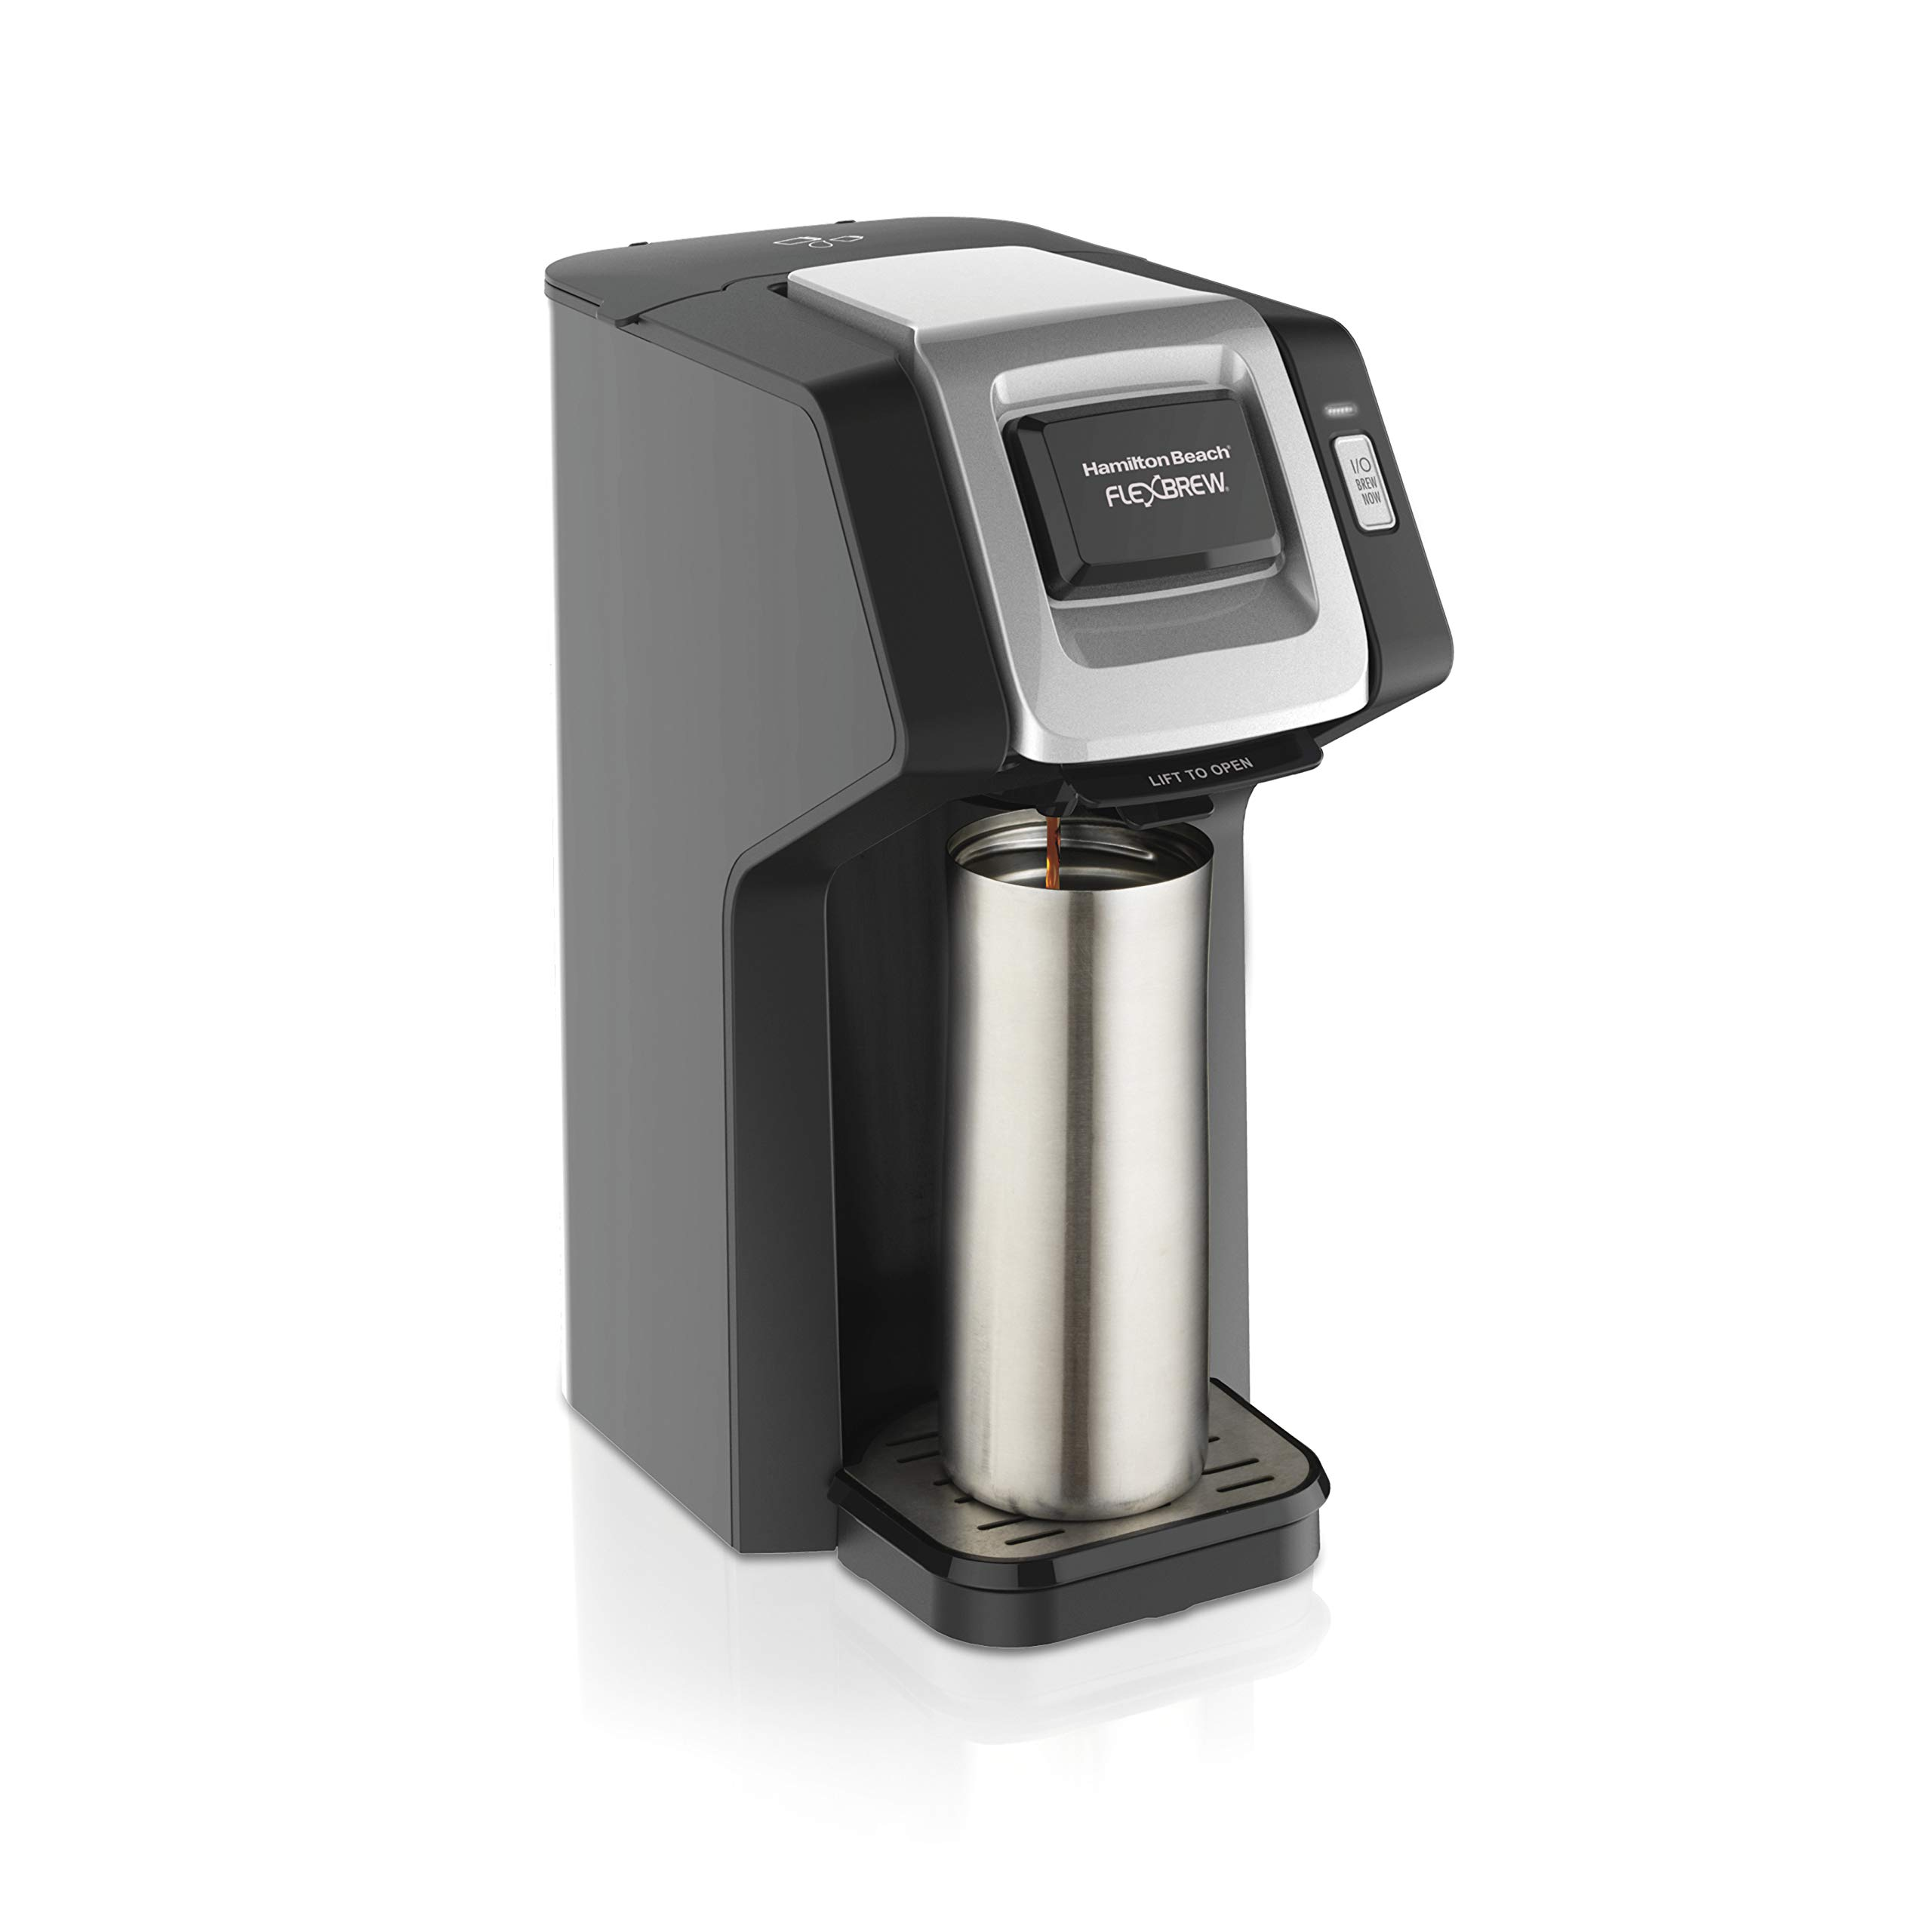 Hamilton Beach (49974) Single Serve Coffee Maker, Compatible with pod Packs and Ground Coffee, Flexbrew, Black by Hamilton Beach